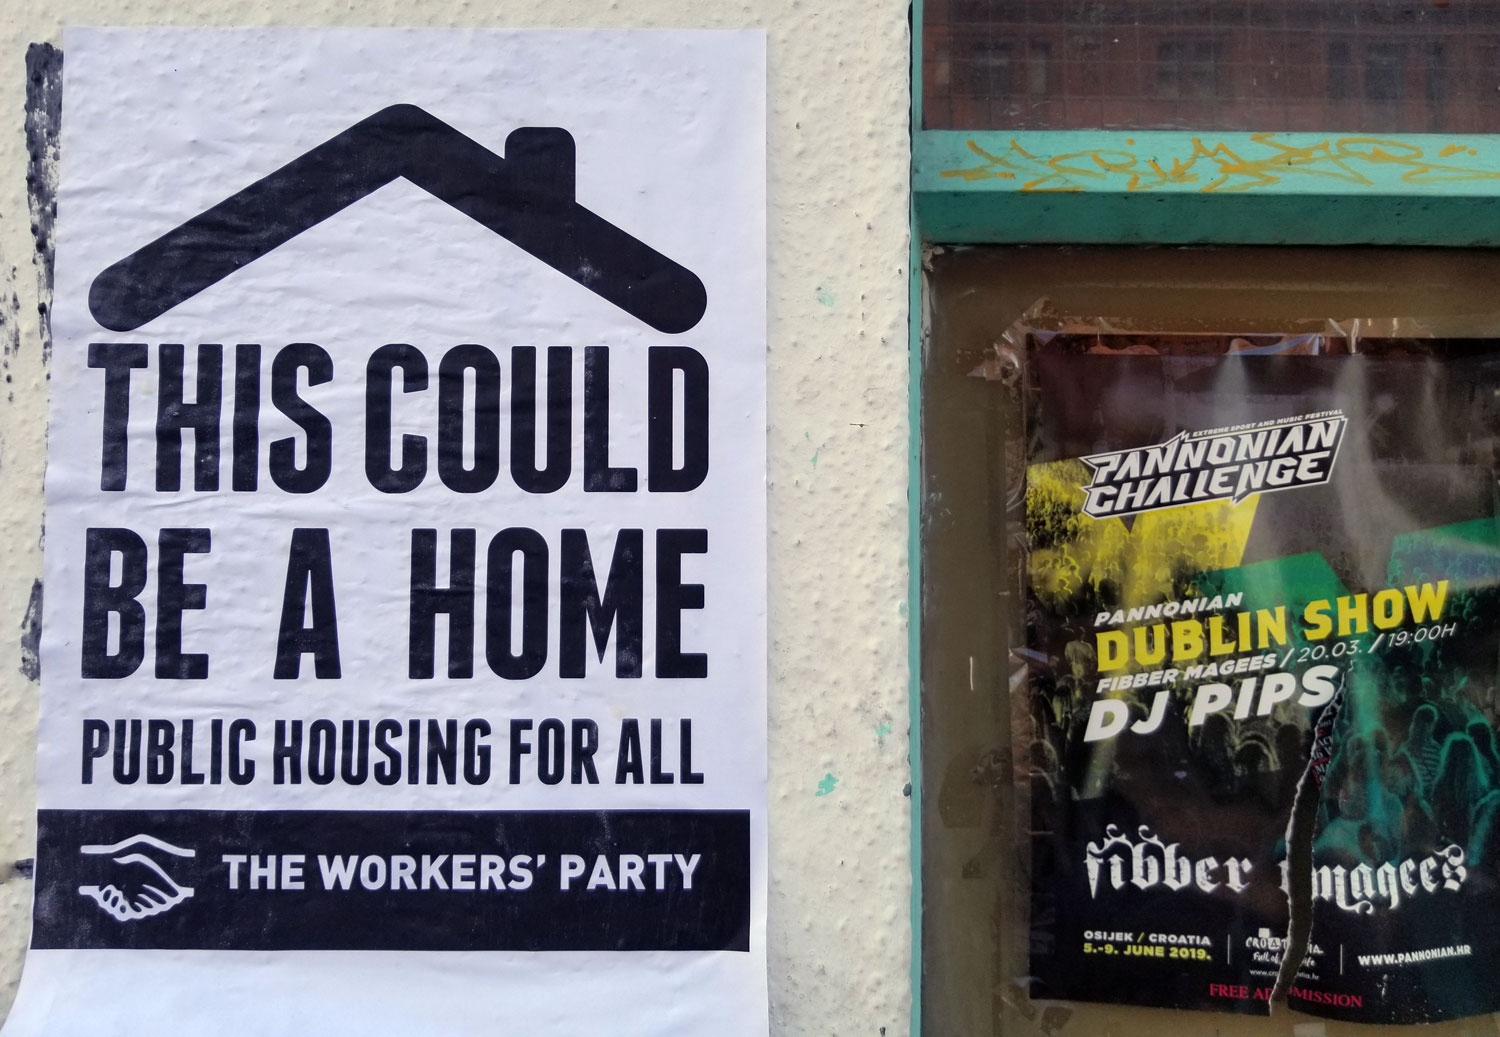 ireland-dublin-workers-party-poster